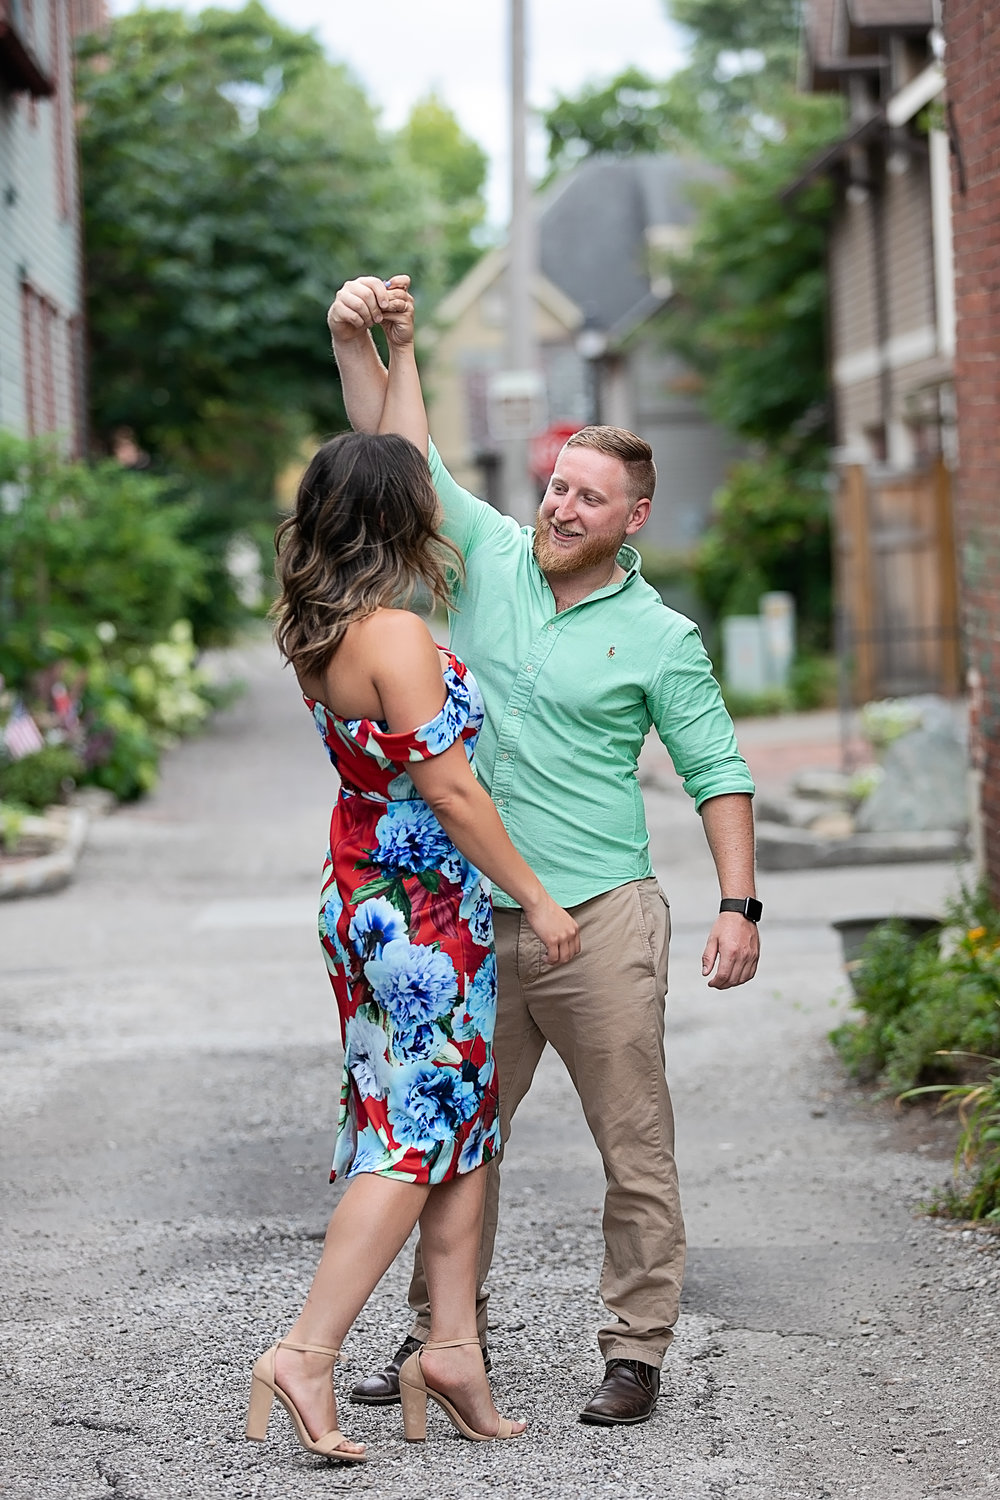 engaged couple dancing on a city street